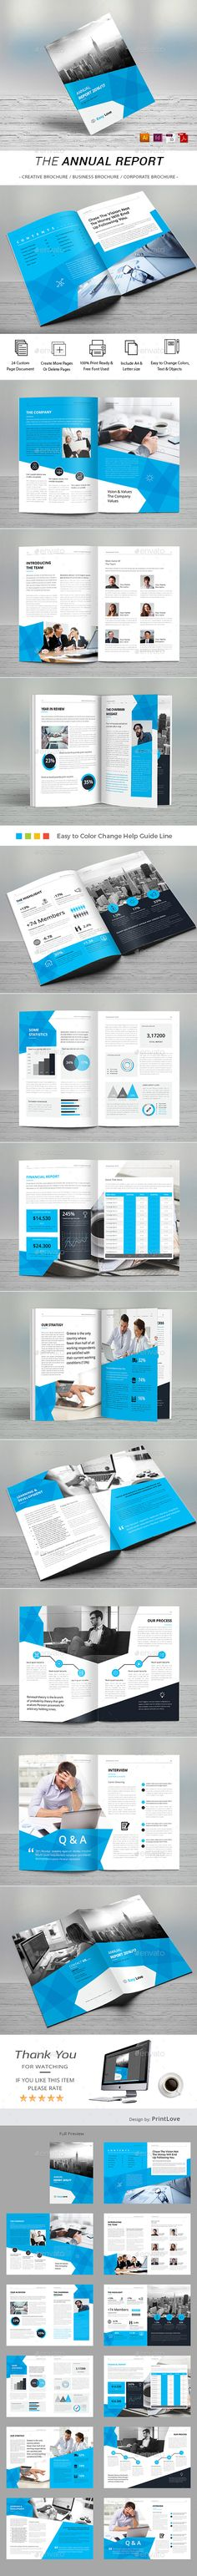 Annual Report - Corporate Brochures Template Vector EPS, InDesign INDD, AI Illustrator